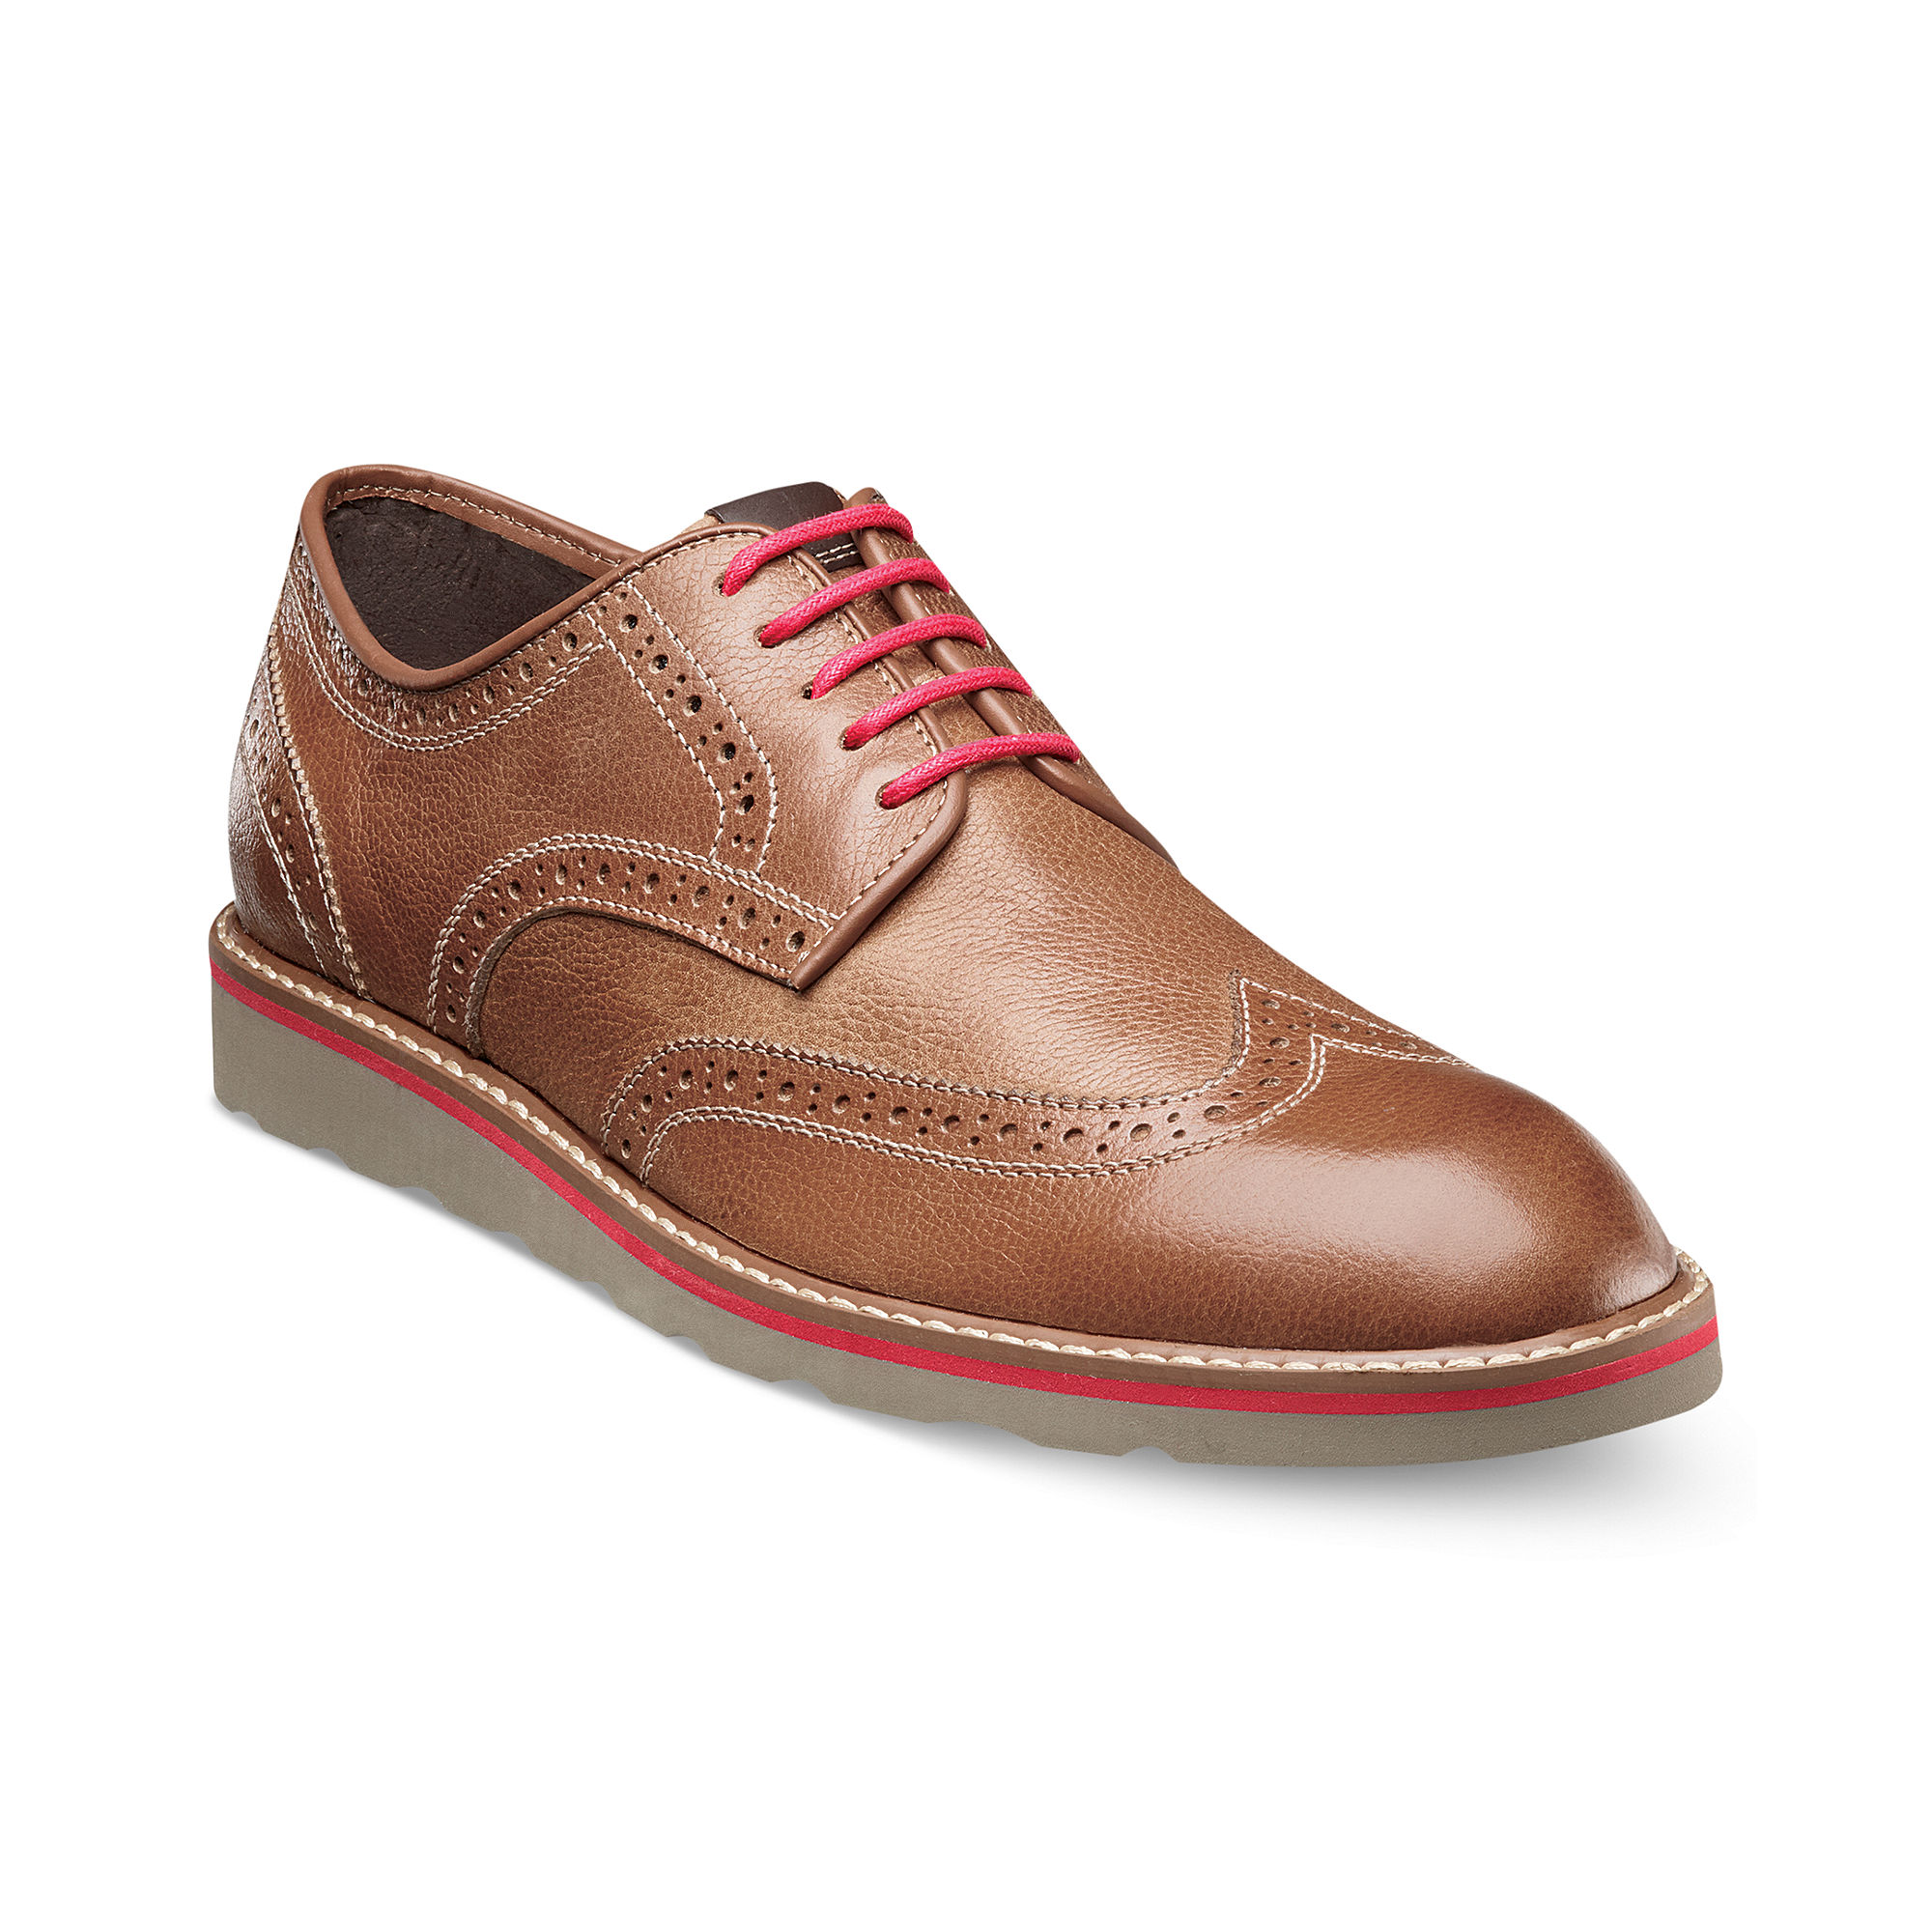 Find great deals on eBay for mens wingtip shoes brown. Shop with confidence.